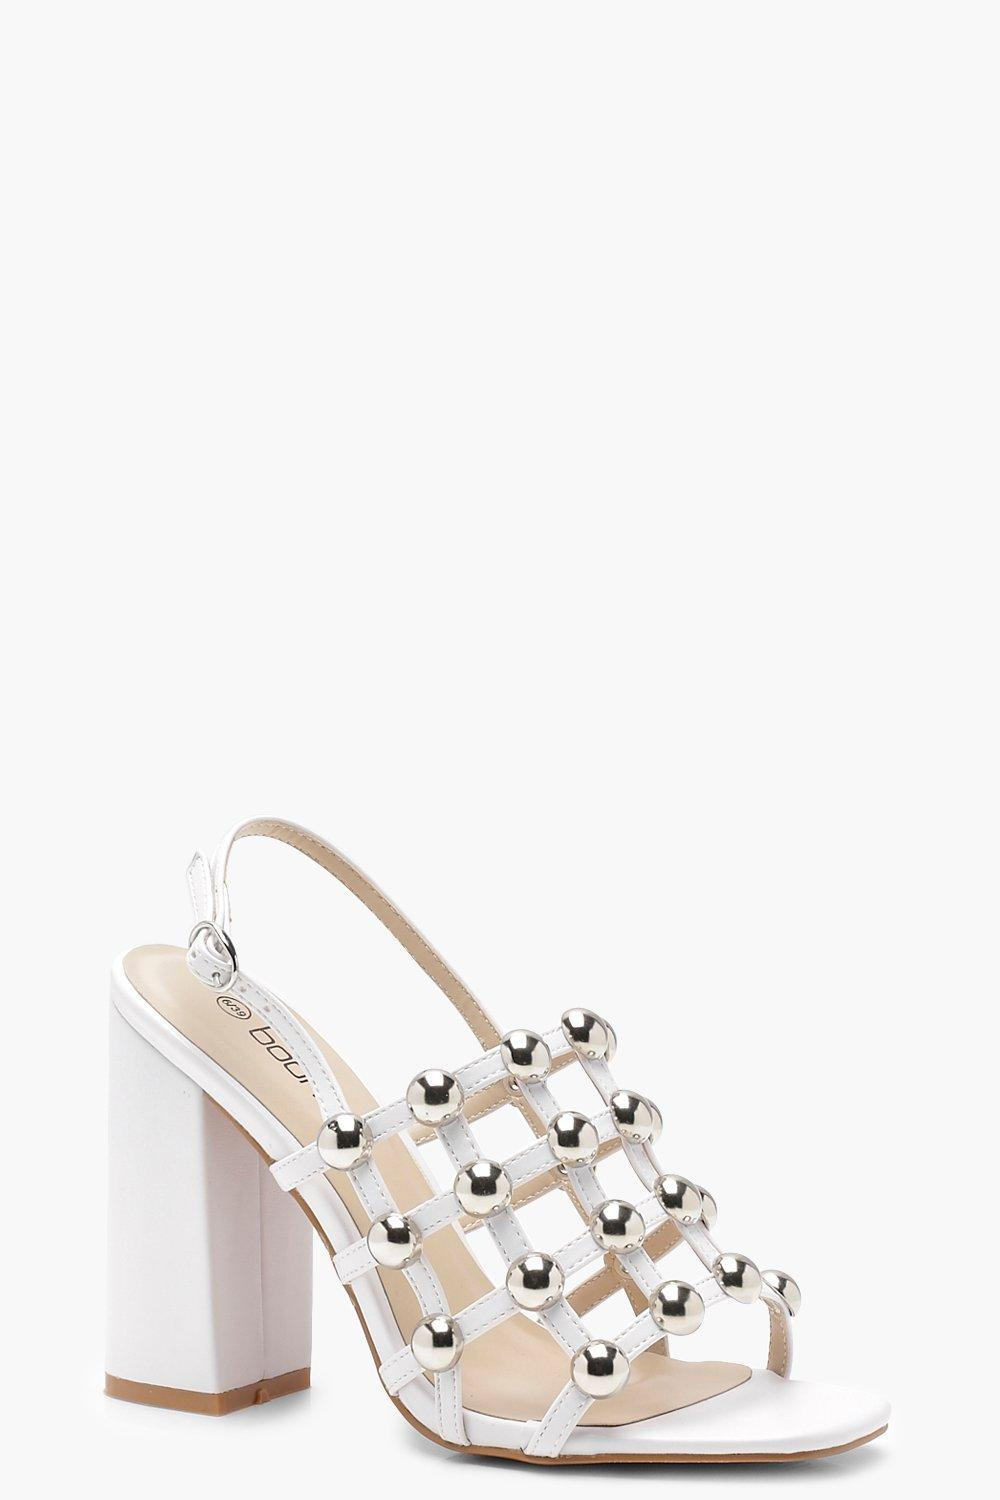 288a0c3636b Boohoo Cage Studded Block Heels in White - Lyst